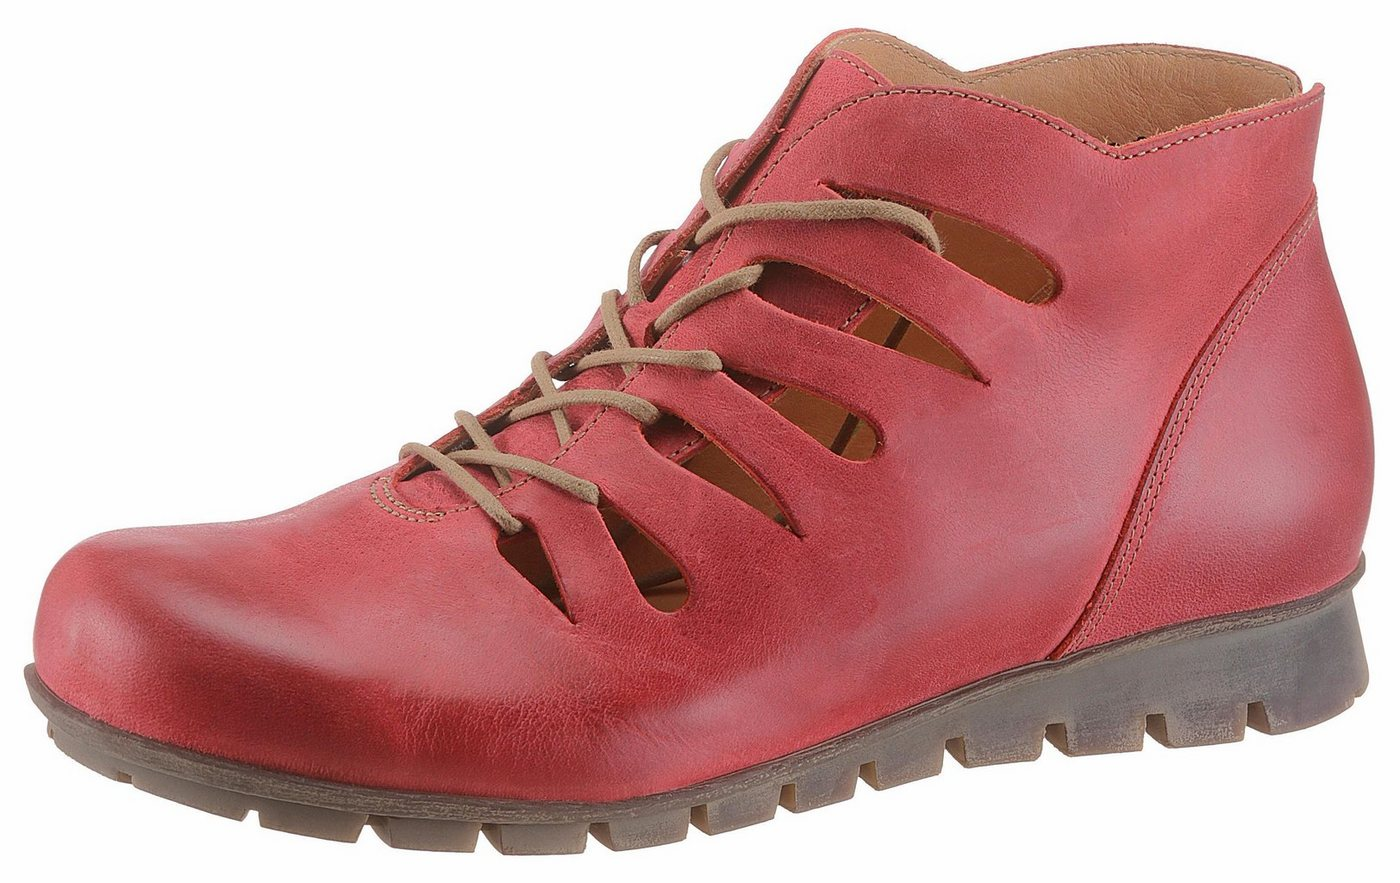 Think! Sommerboots in Sacchetto-Machart | Schuhe > Boots > Sommerboots | Rot | Think!